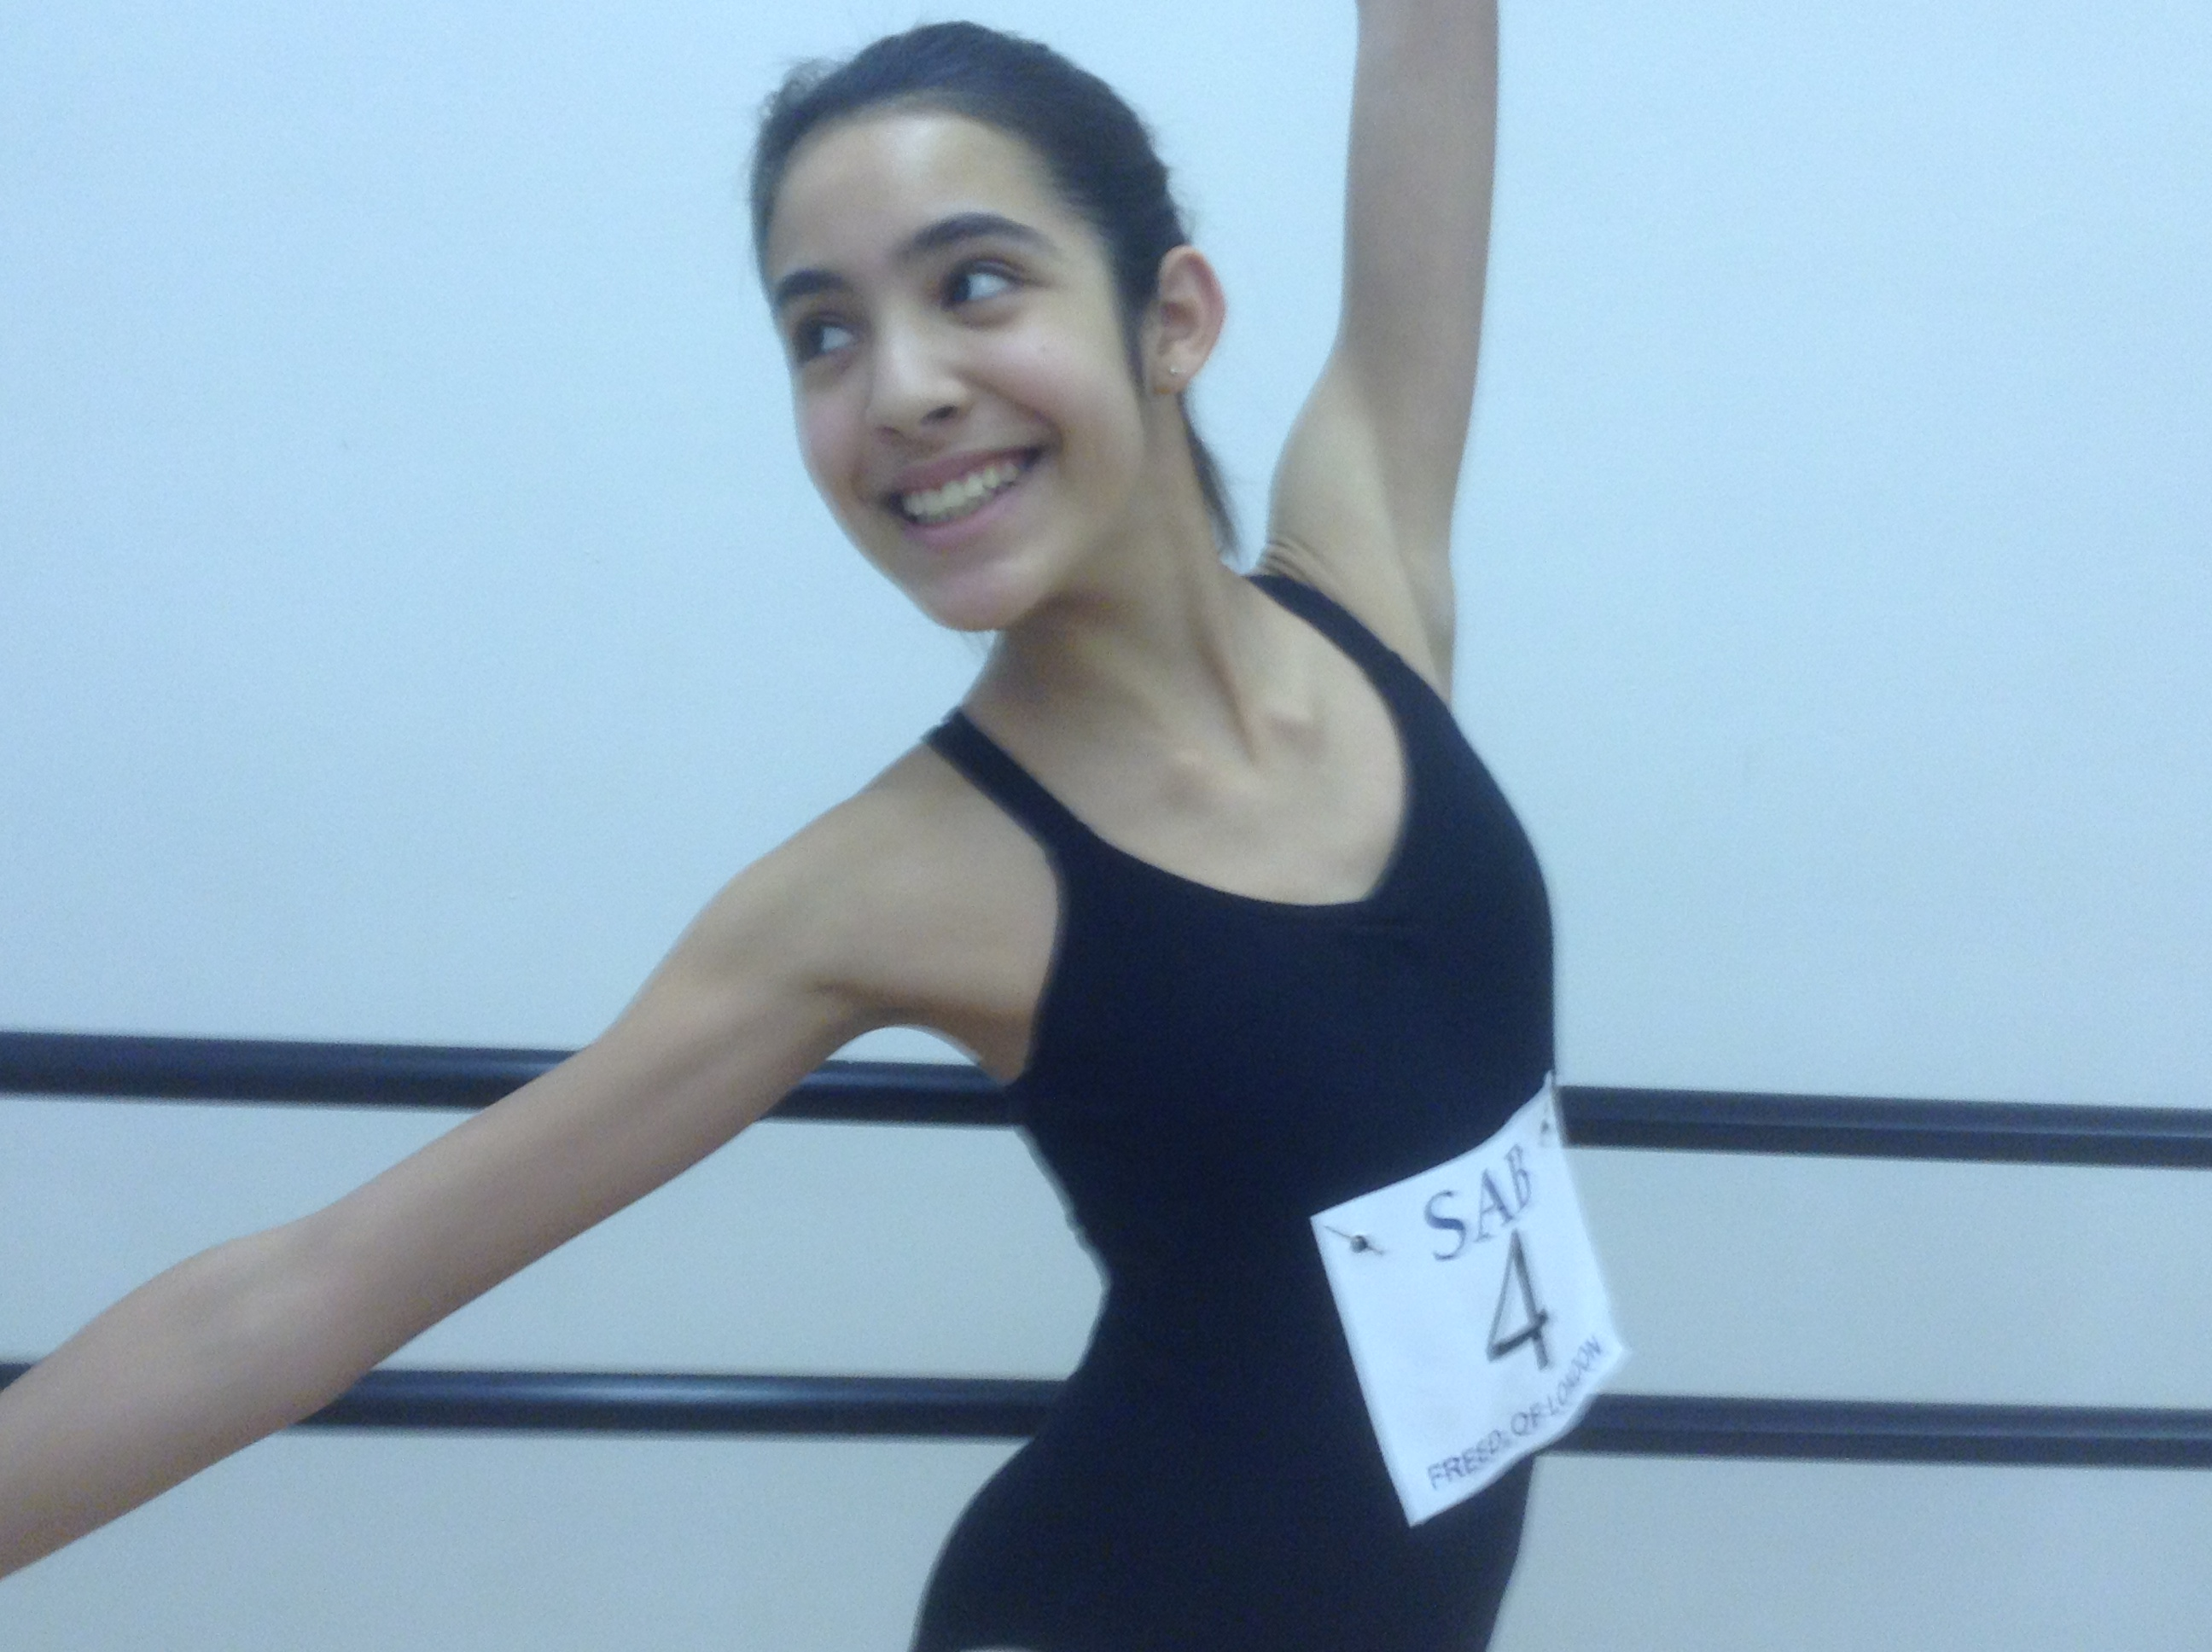 Milwaukee's Academy of Classical Ballet Student Accepted into Joffrey Ballet Program